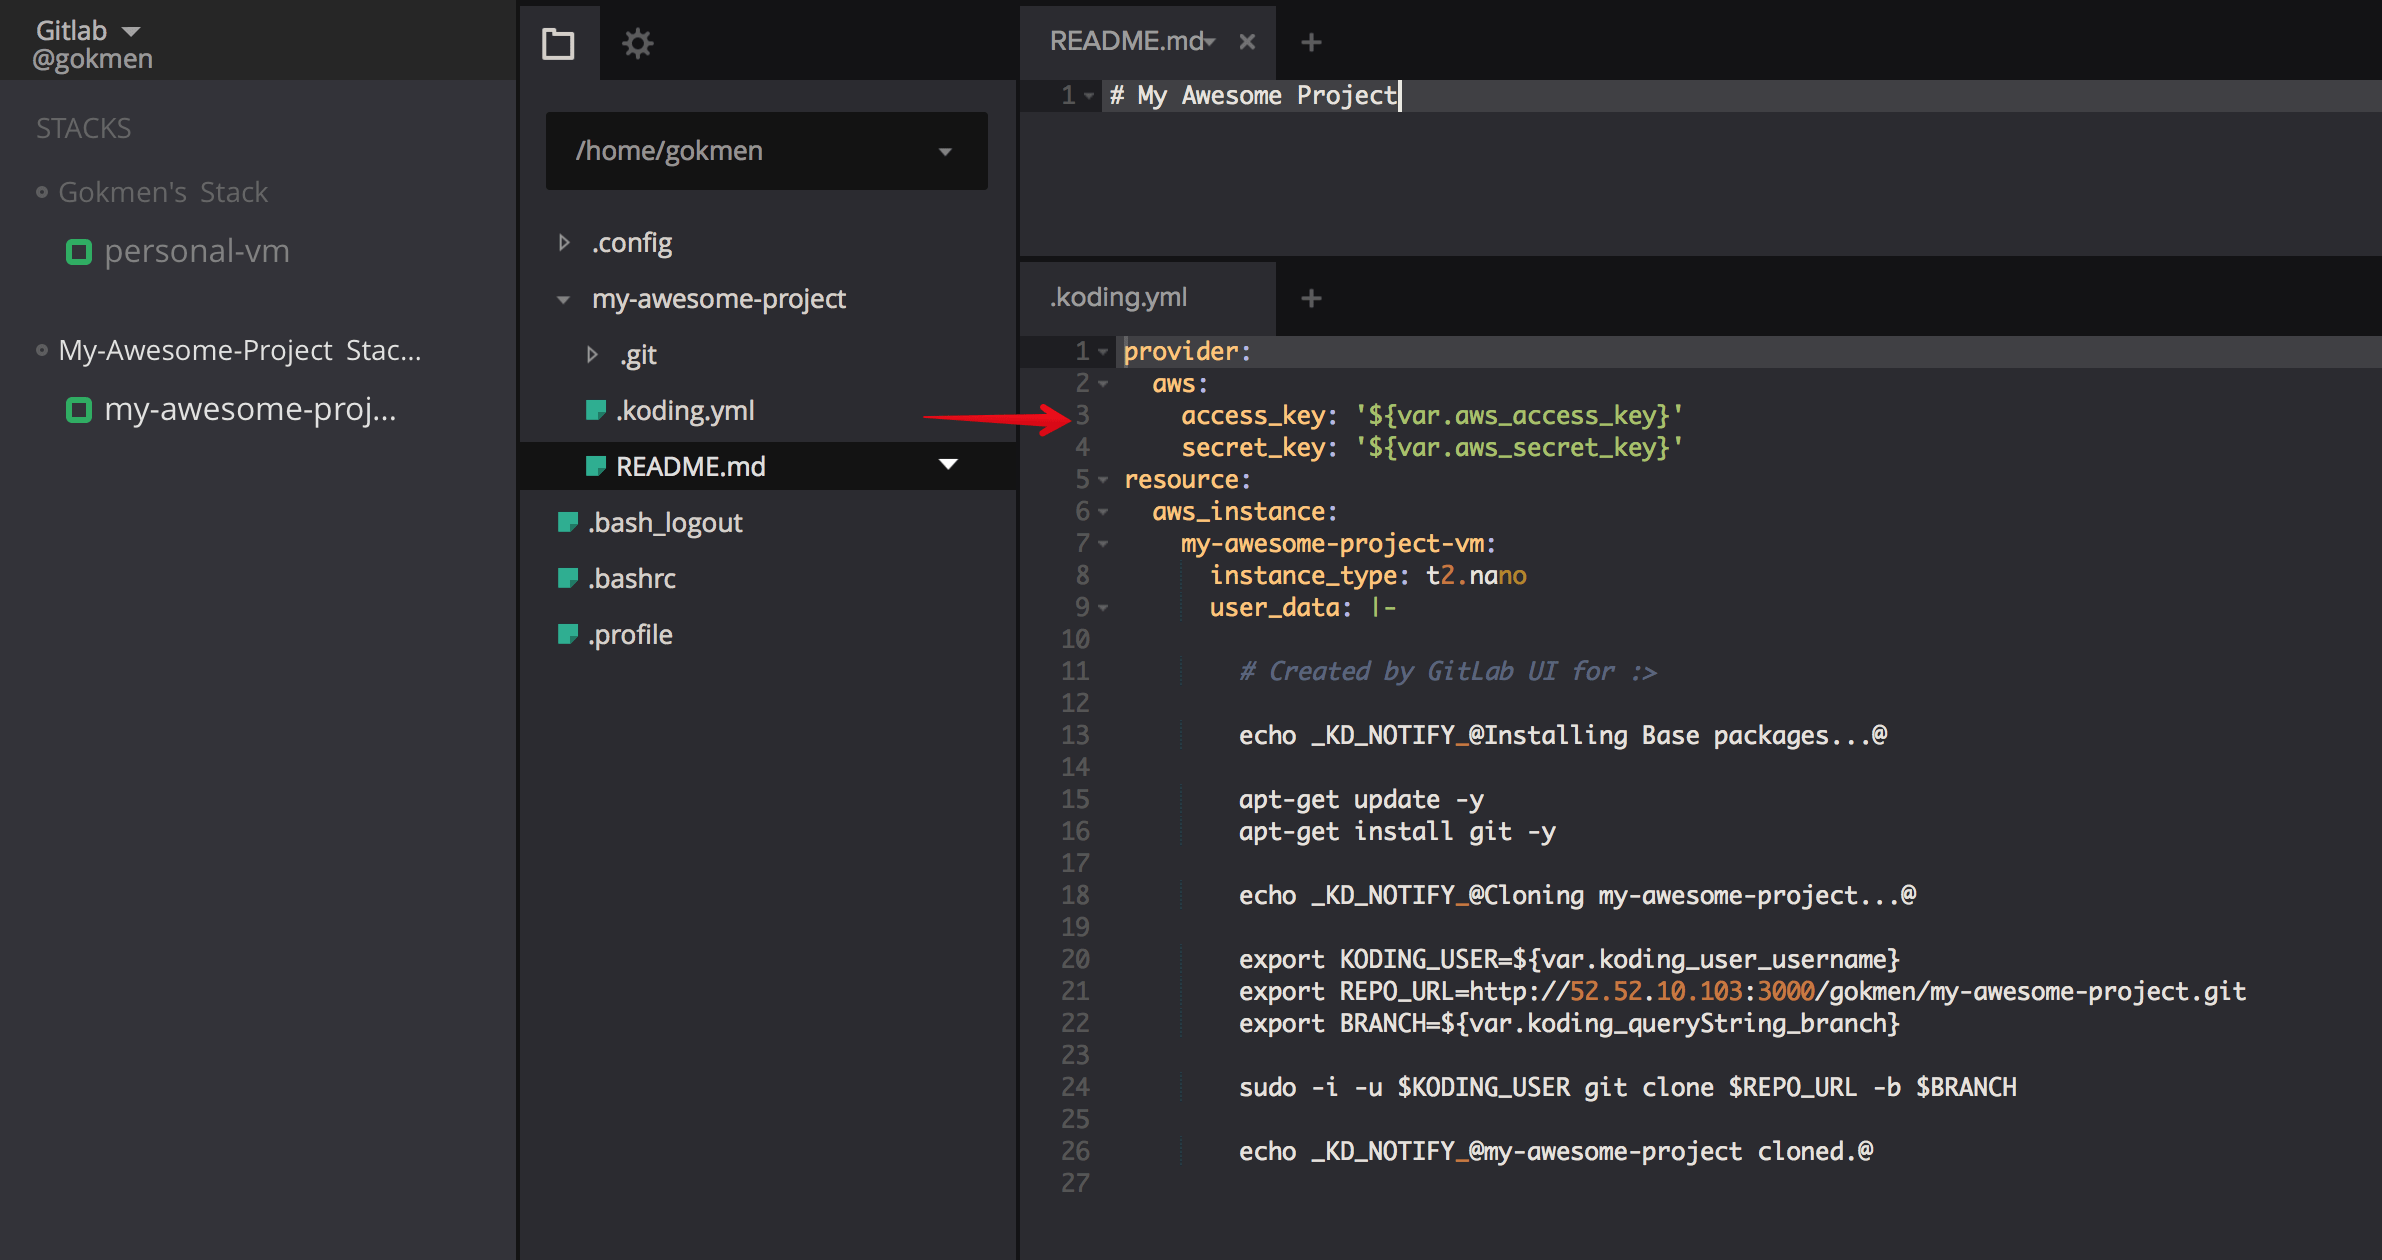 Koding, an integrated IDE in GitLab 8.11